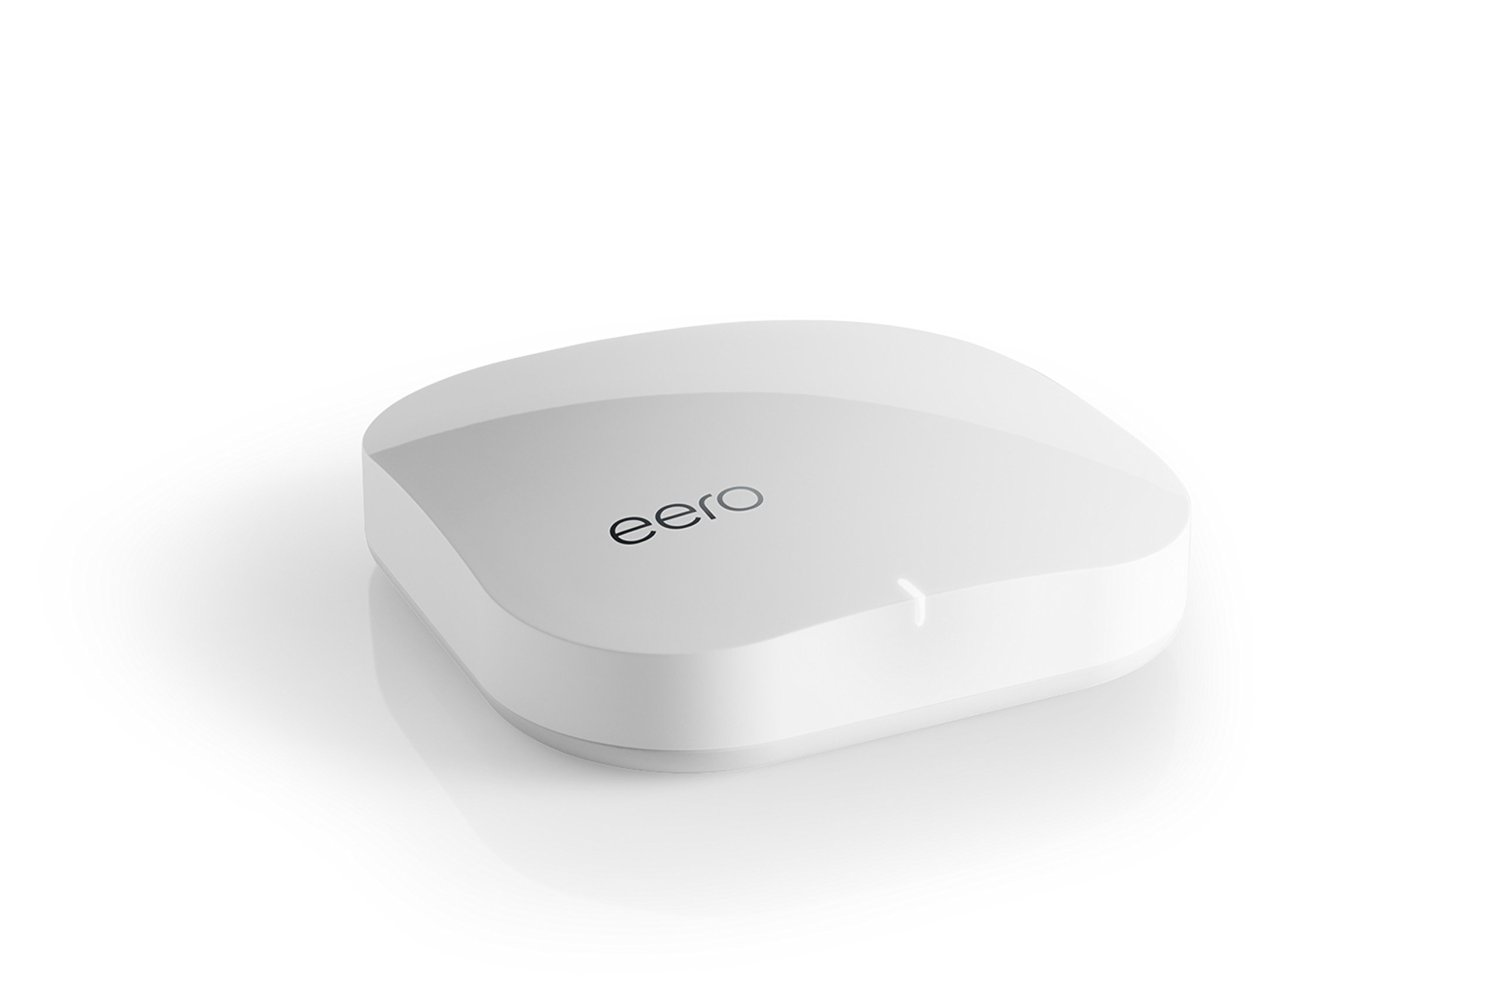 Eero Mesh Networks Upgraded To Truemesh And Adds In